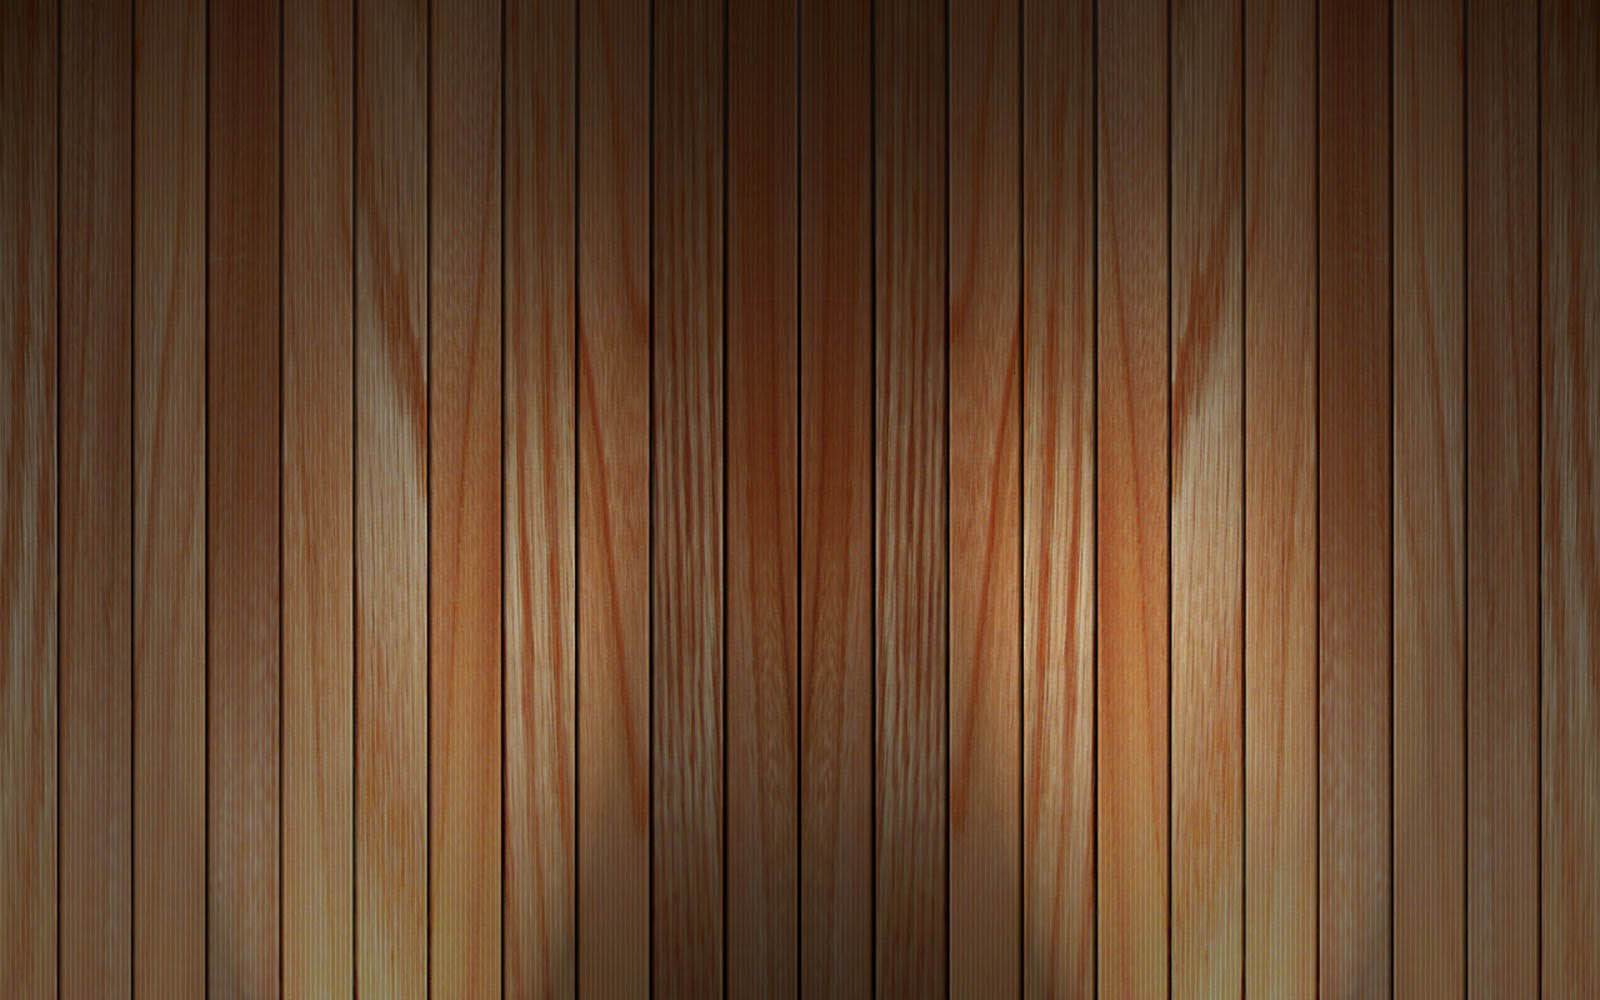 Wood Desktop